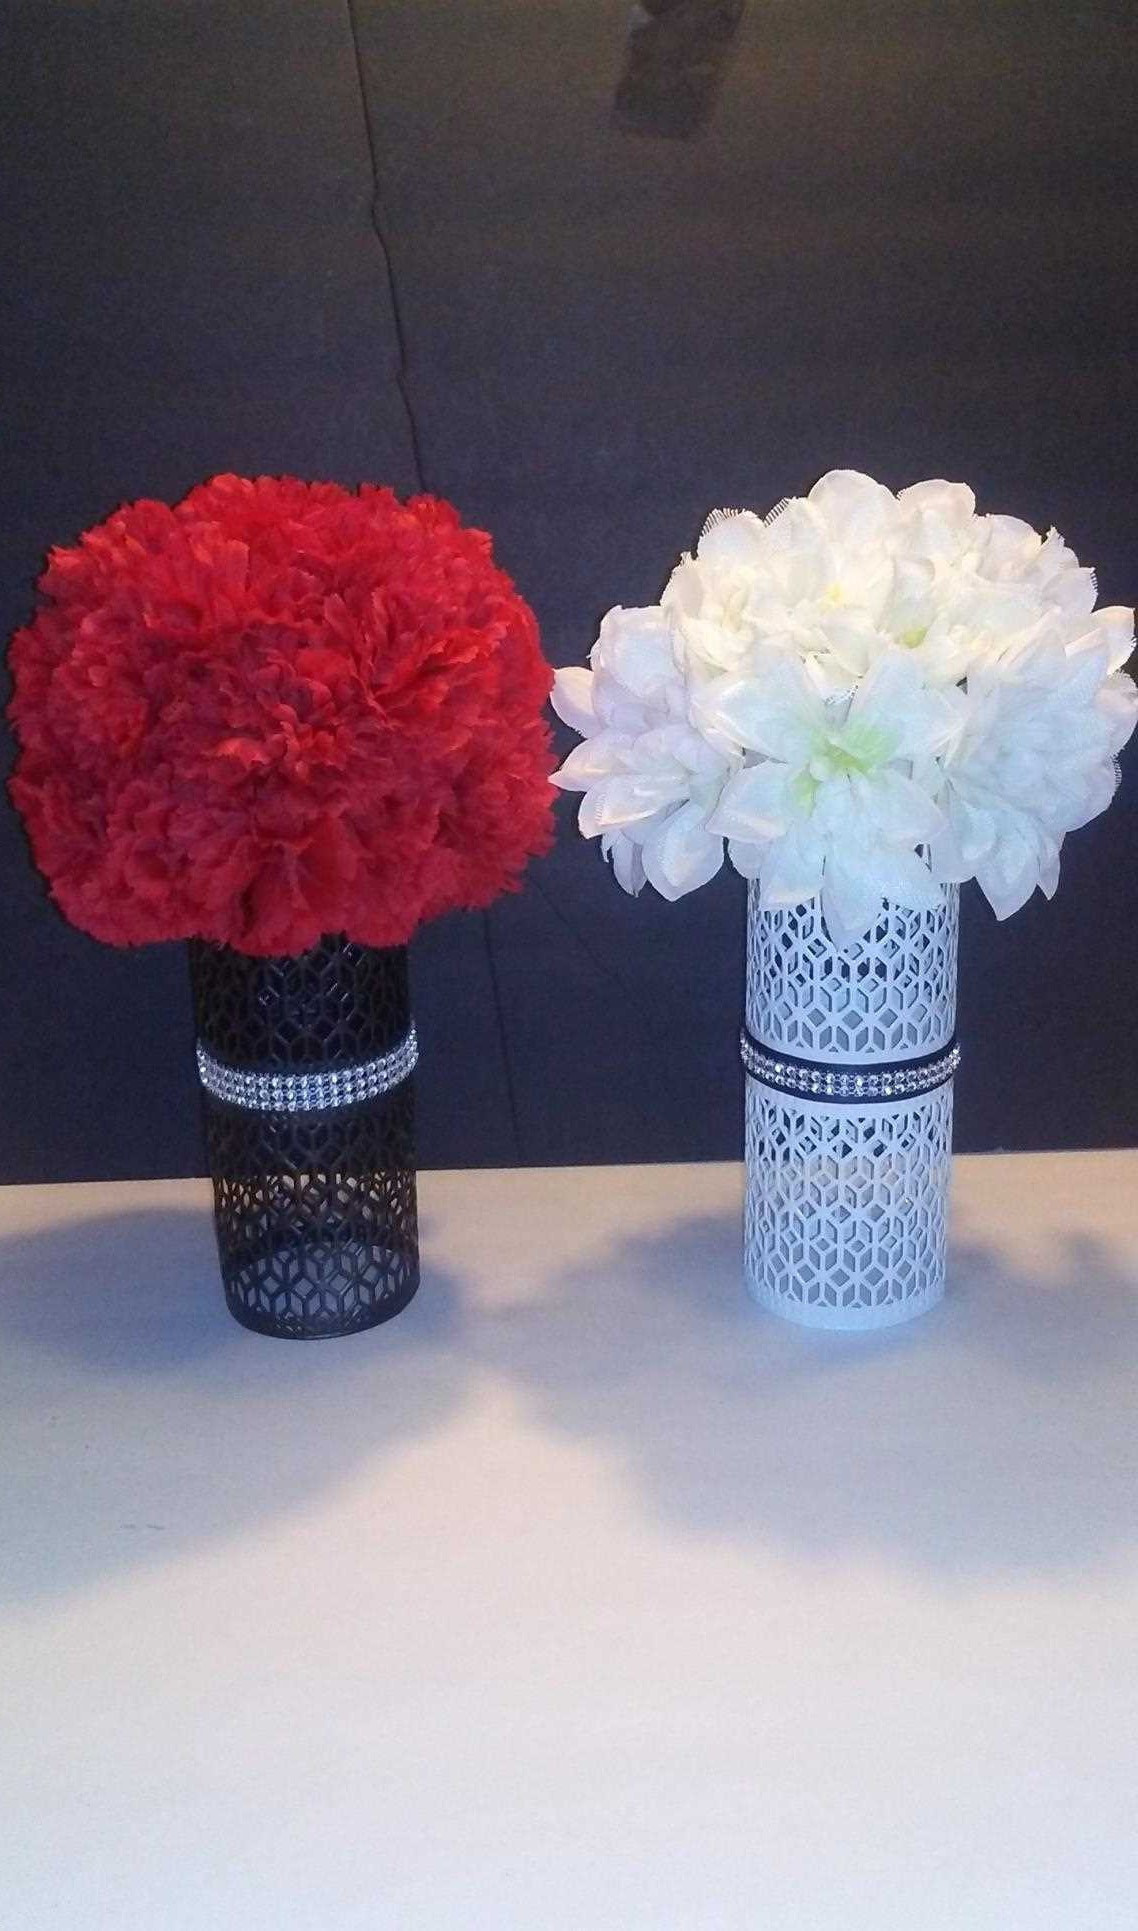 candy bar vase arrangements of decoration 1 an beau dollar tree wedding decorations awesome h vases pertaining to decoration 1 an ganial 47 awesome wedding tree decorations of decoration 1 an beau dollar tree